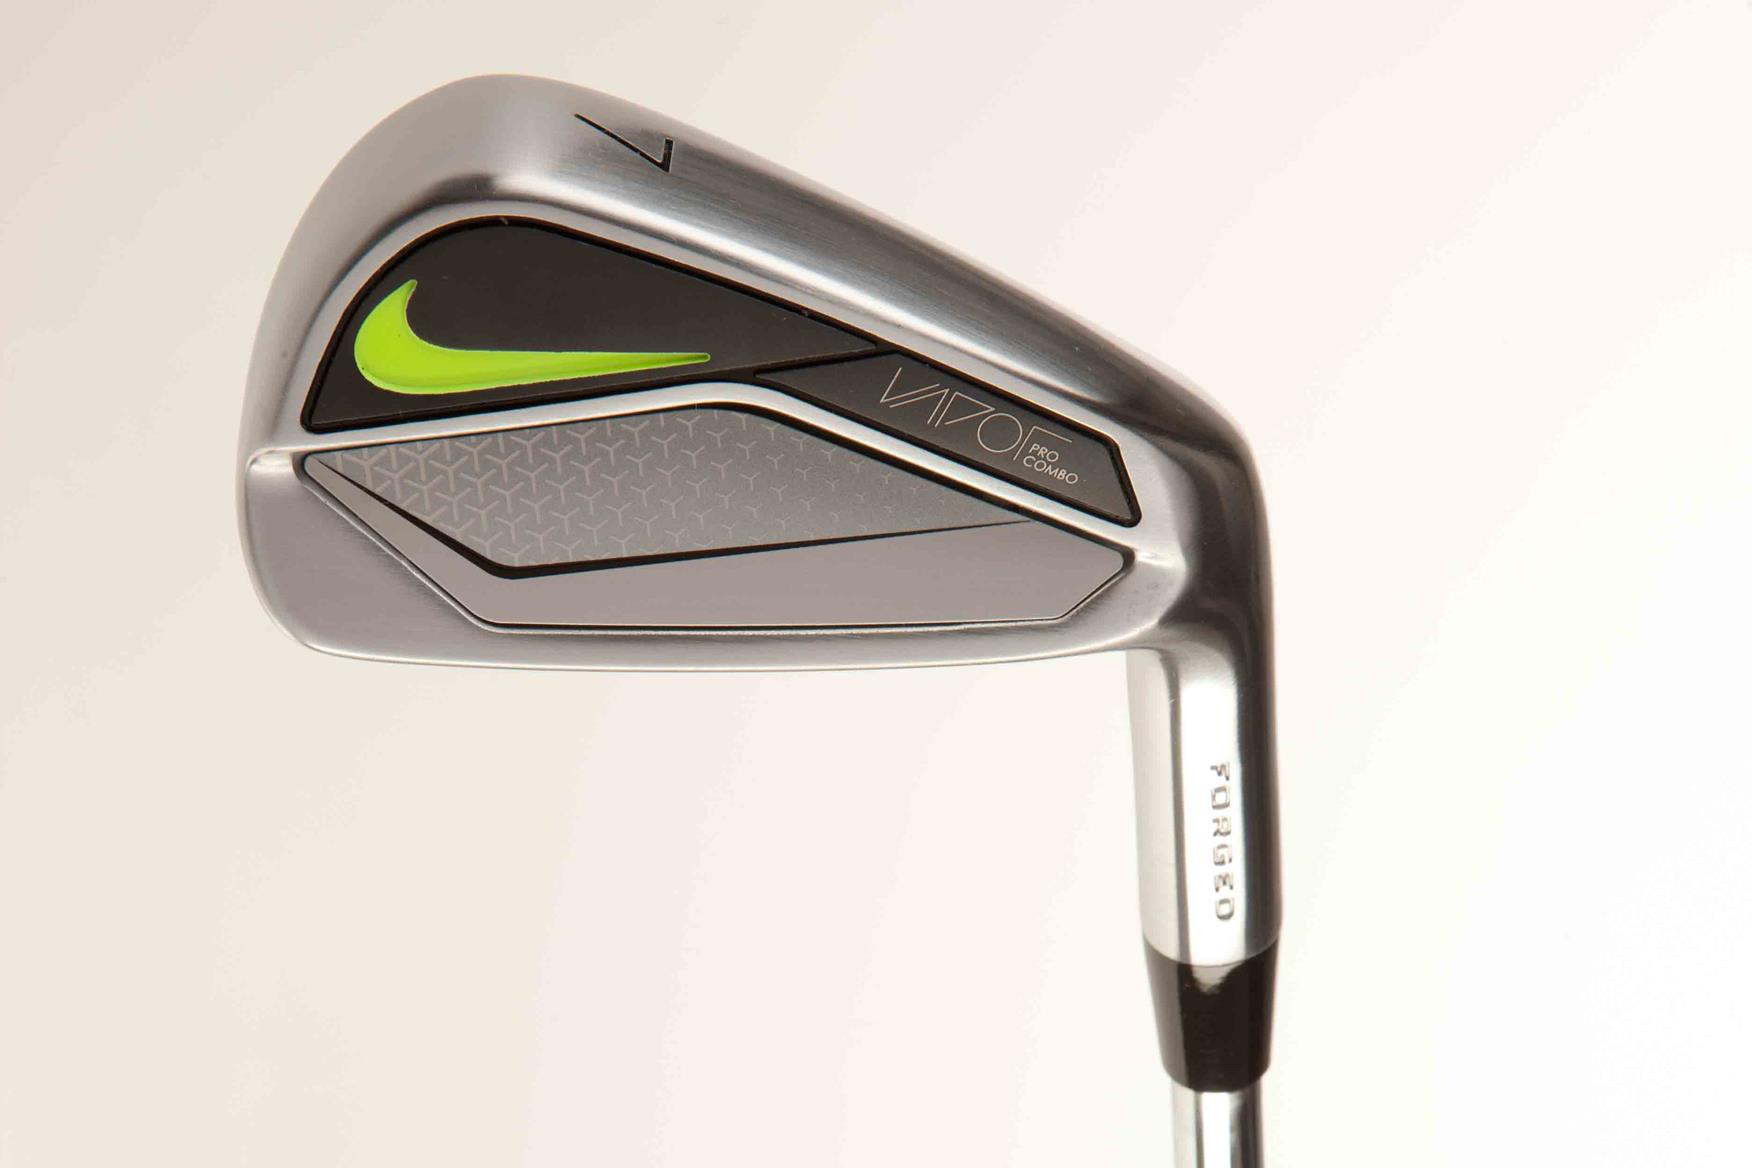 7de3c1828e1 Nike Golf Vapor Pro Combo Irons Review